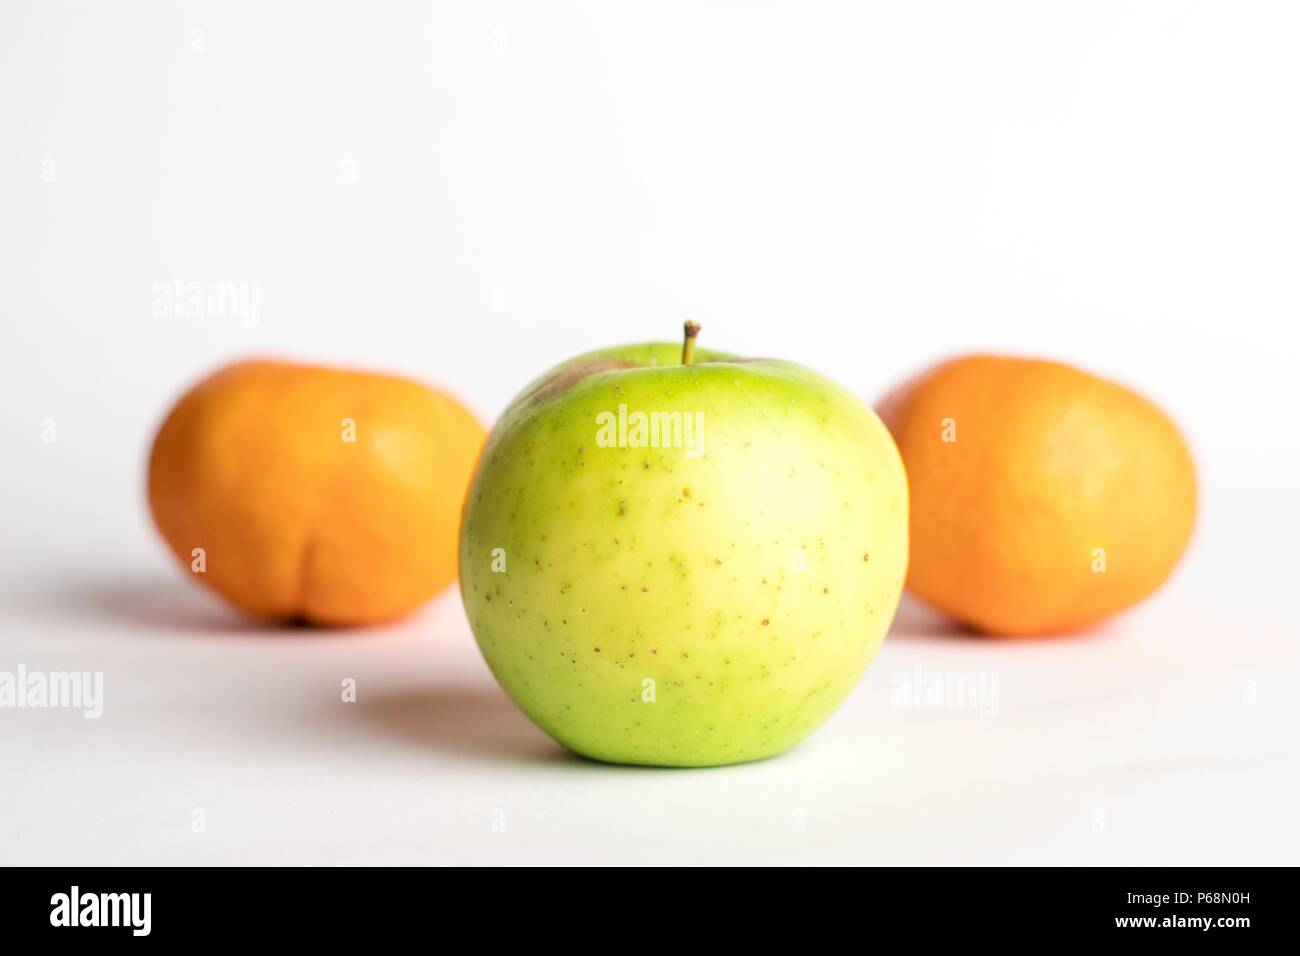 One green juicy apple on centre with small spots with 2 mandarins below on a white background with a soft shadow - Stock Image